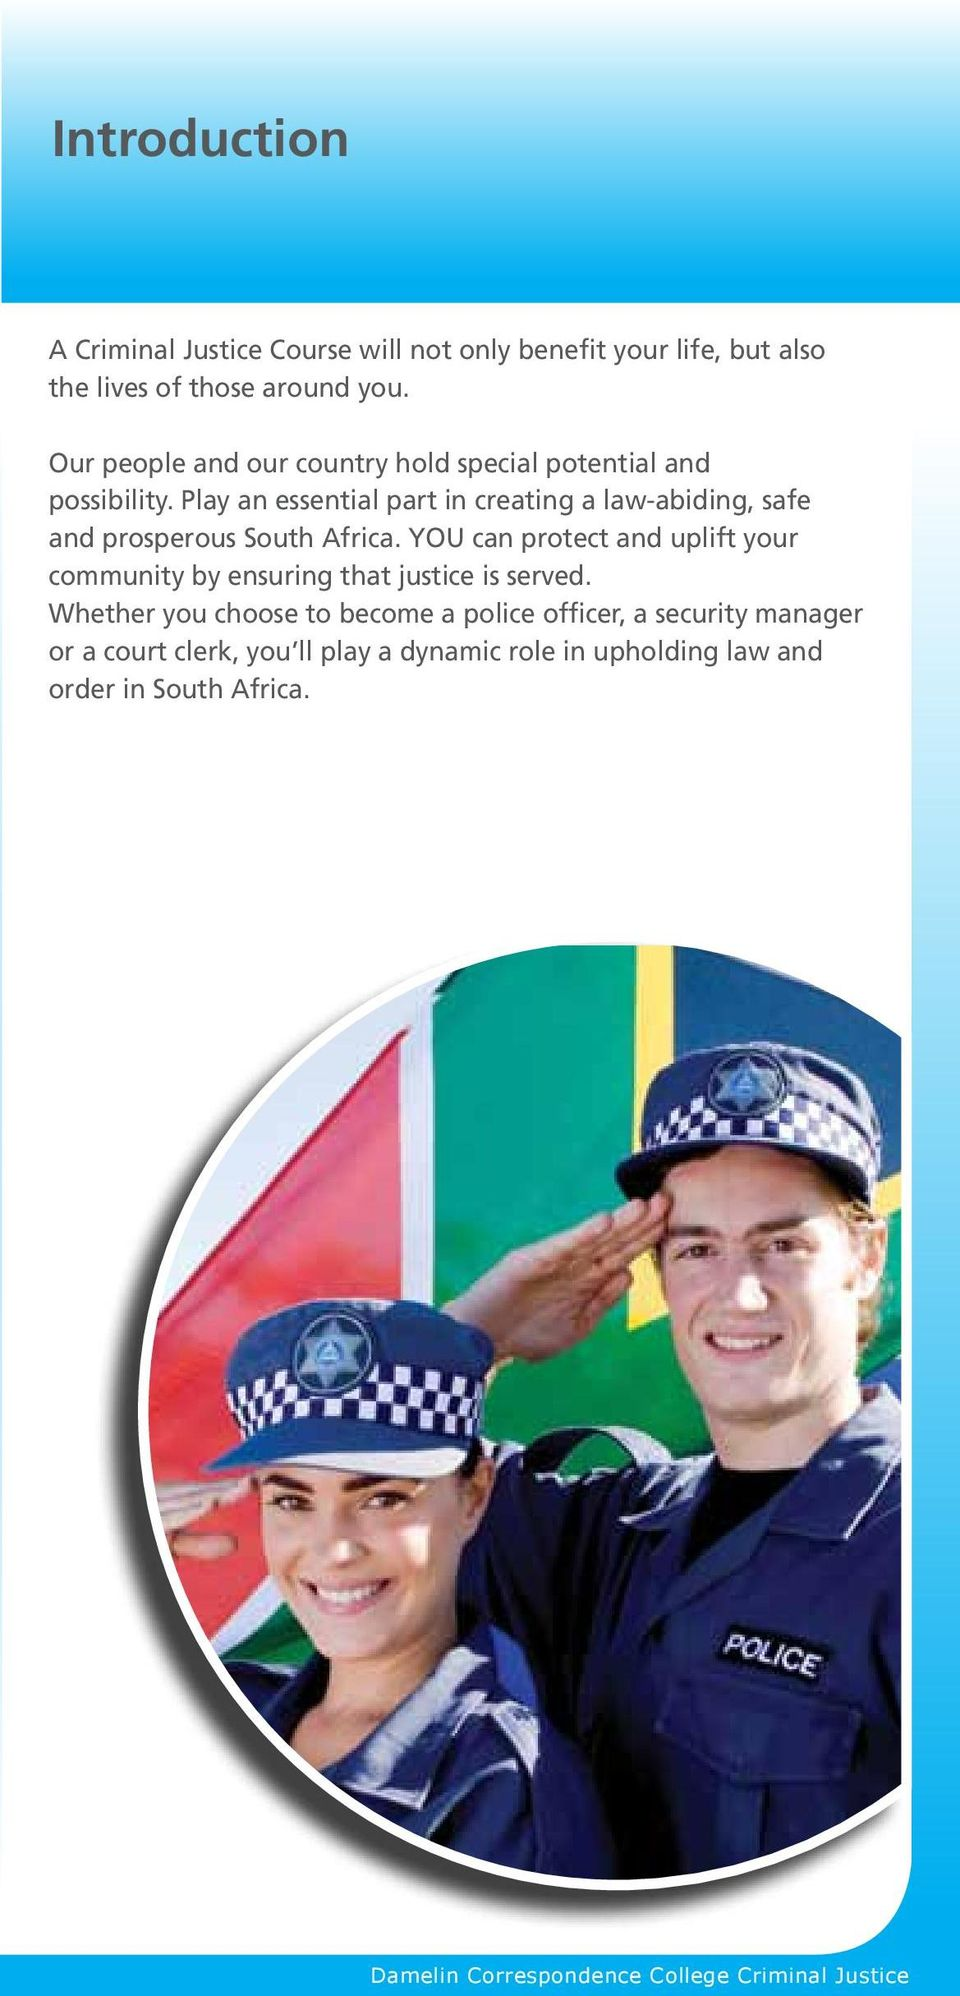 Play an essential part in creating a law-abiding, safe and prosperous South Africa.